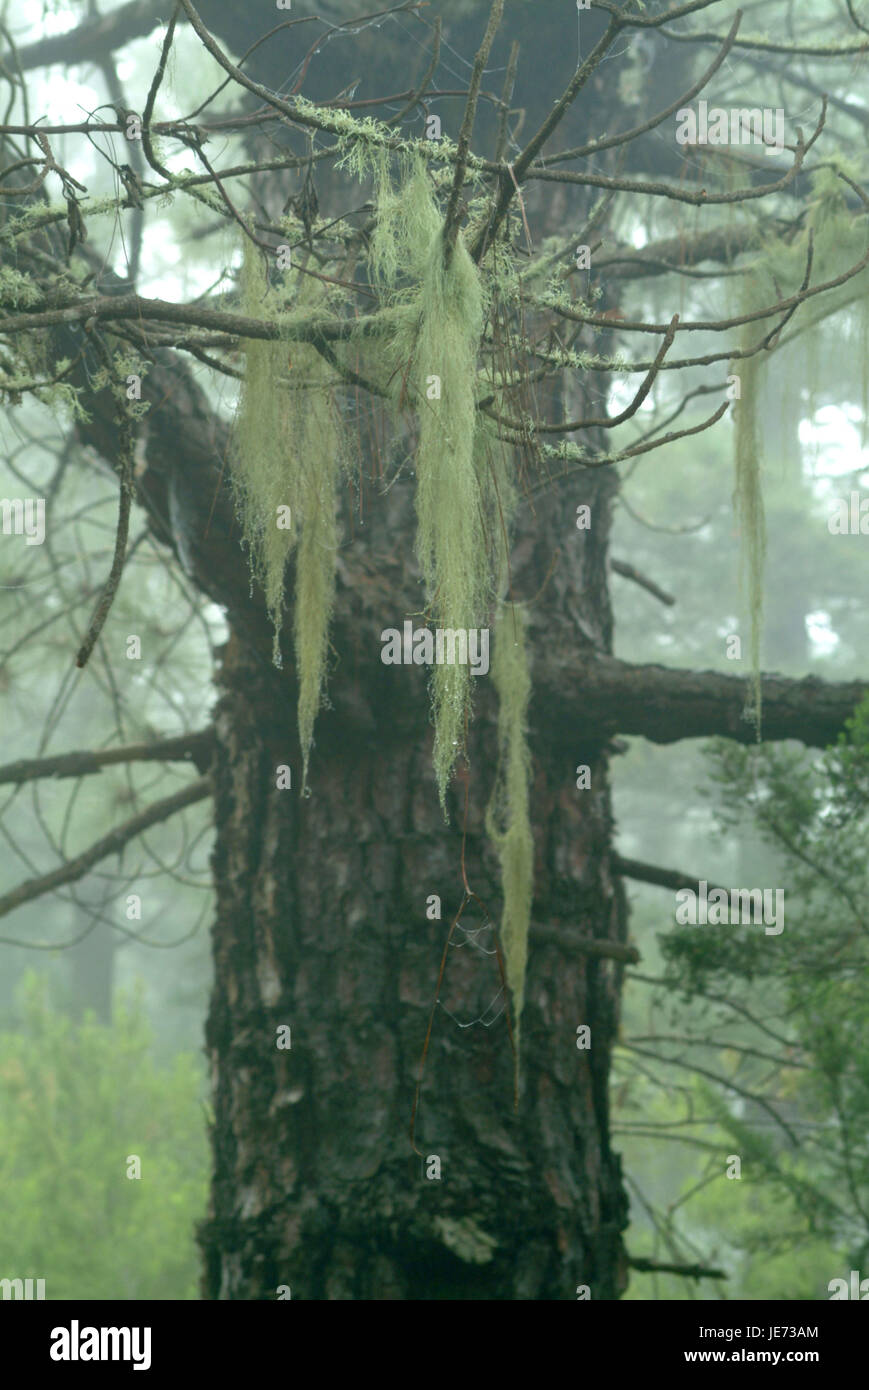 Tree, lichens, damp wood, Tenerife, the Canaries, - Stock Image